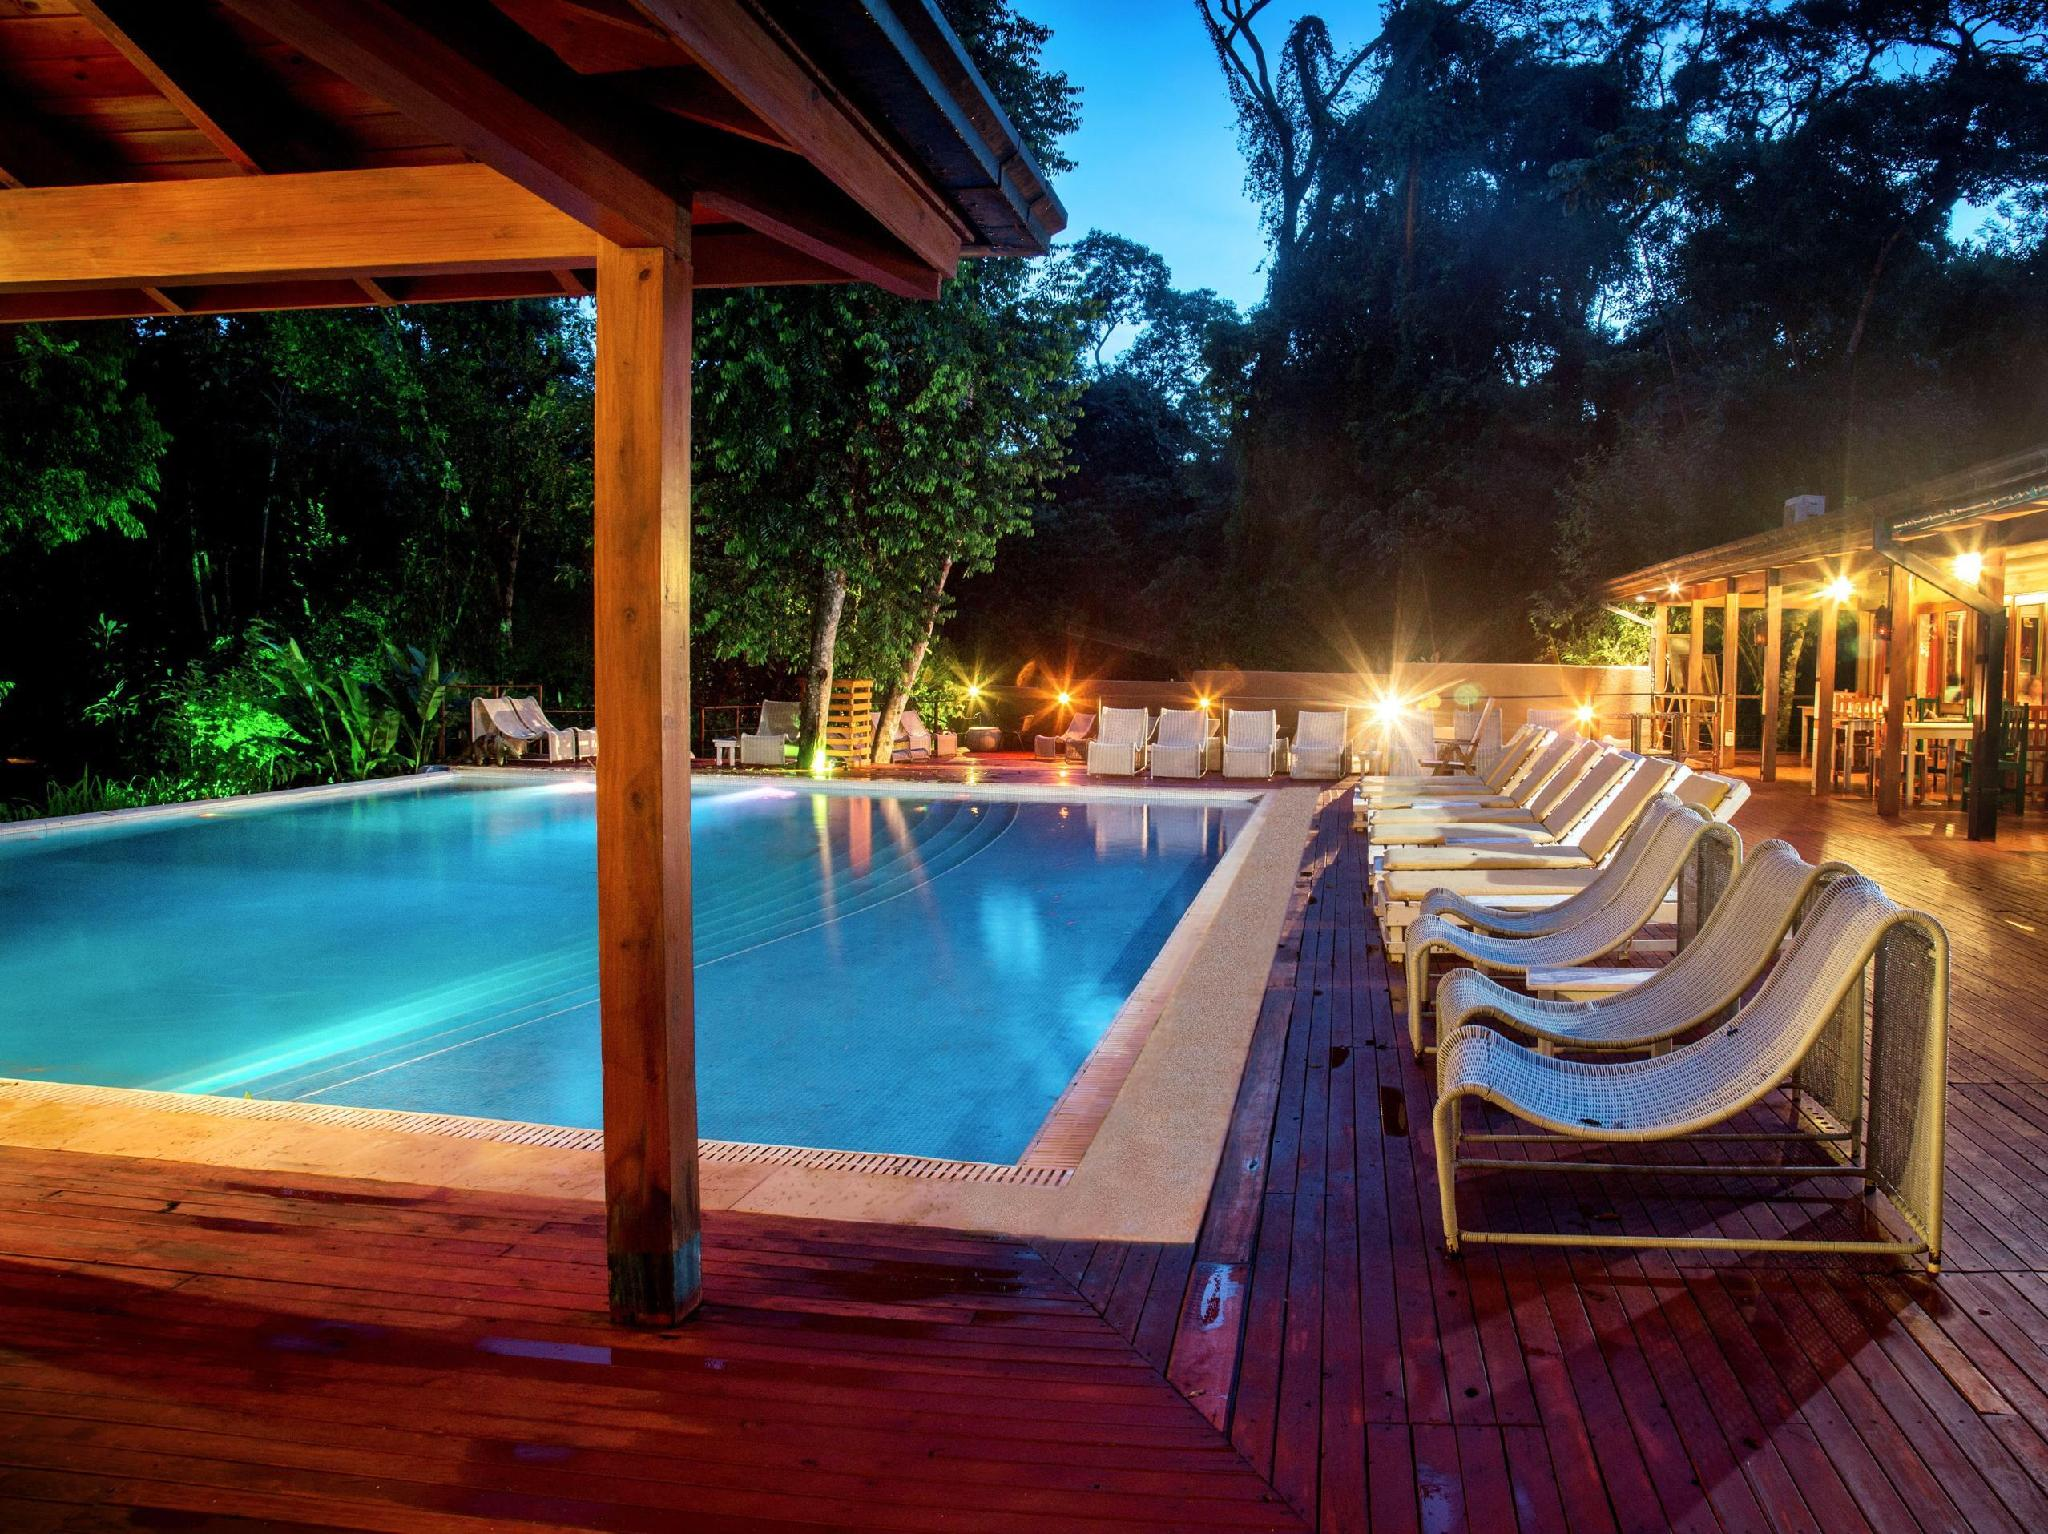 La Cantera Jungle Lodge Iguazu Hotel - Hotels and Accommodation in Argentina, South America